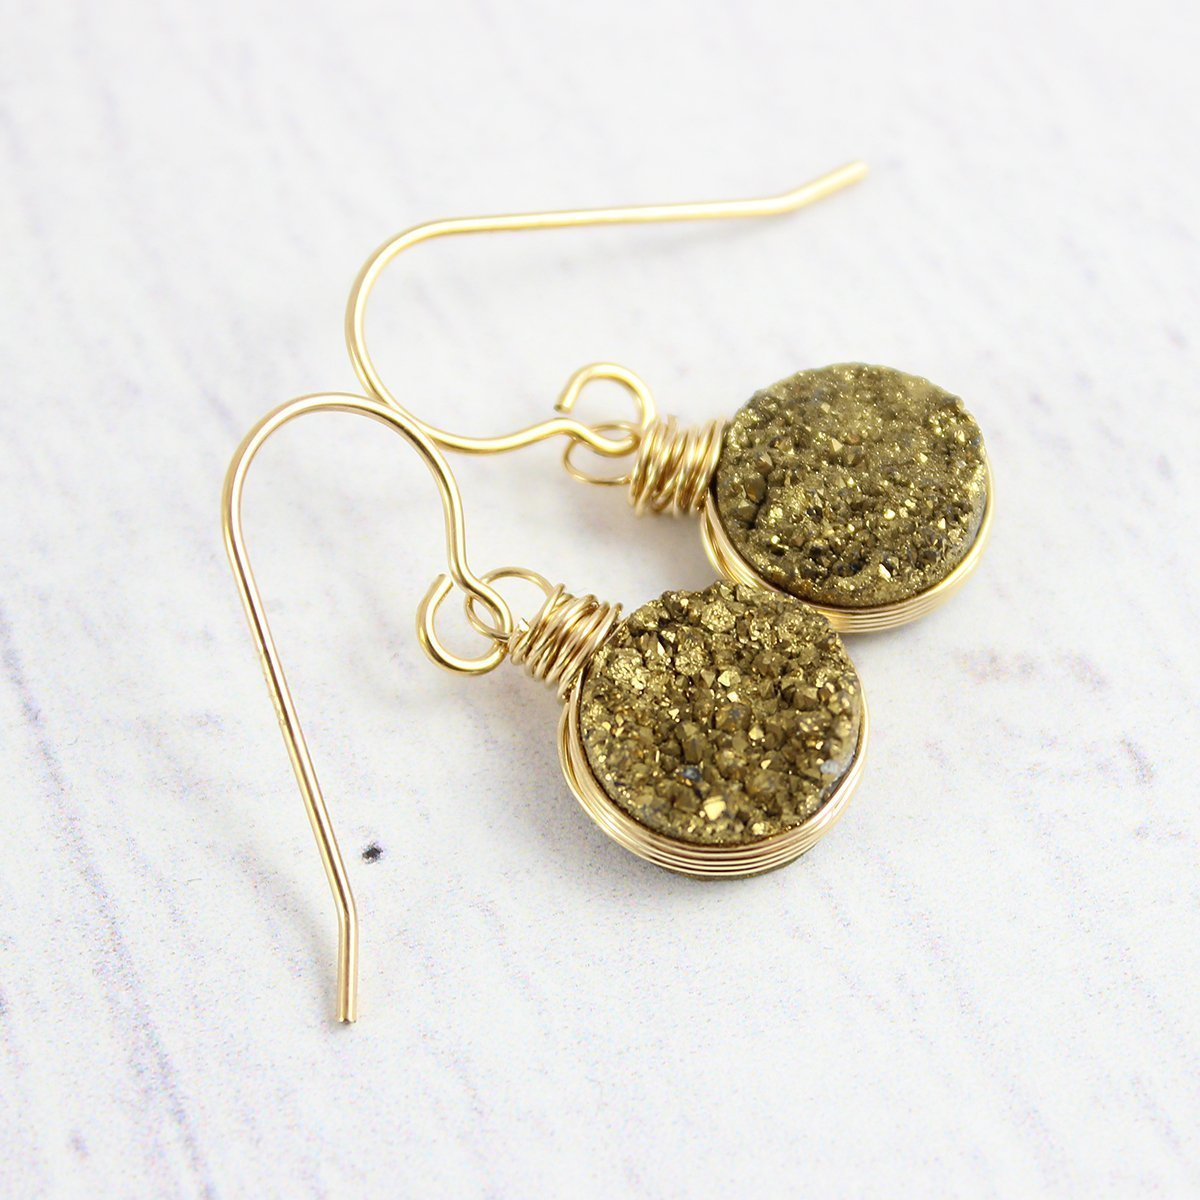 Round Earrings Druzy Sparkly Crystal Earrings Natural Drusy Earrings Gold Dangle Unique Gifts For Women R7-155